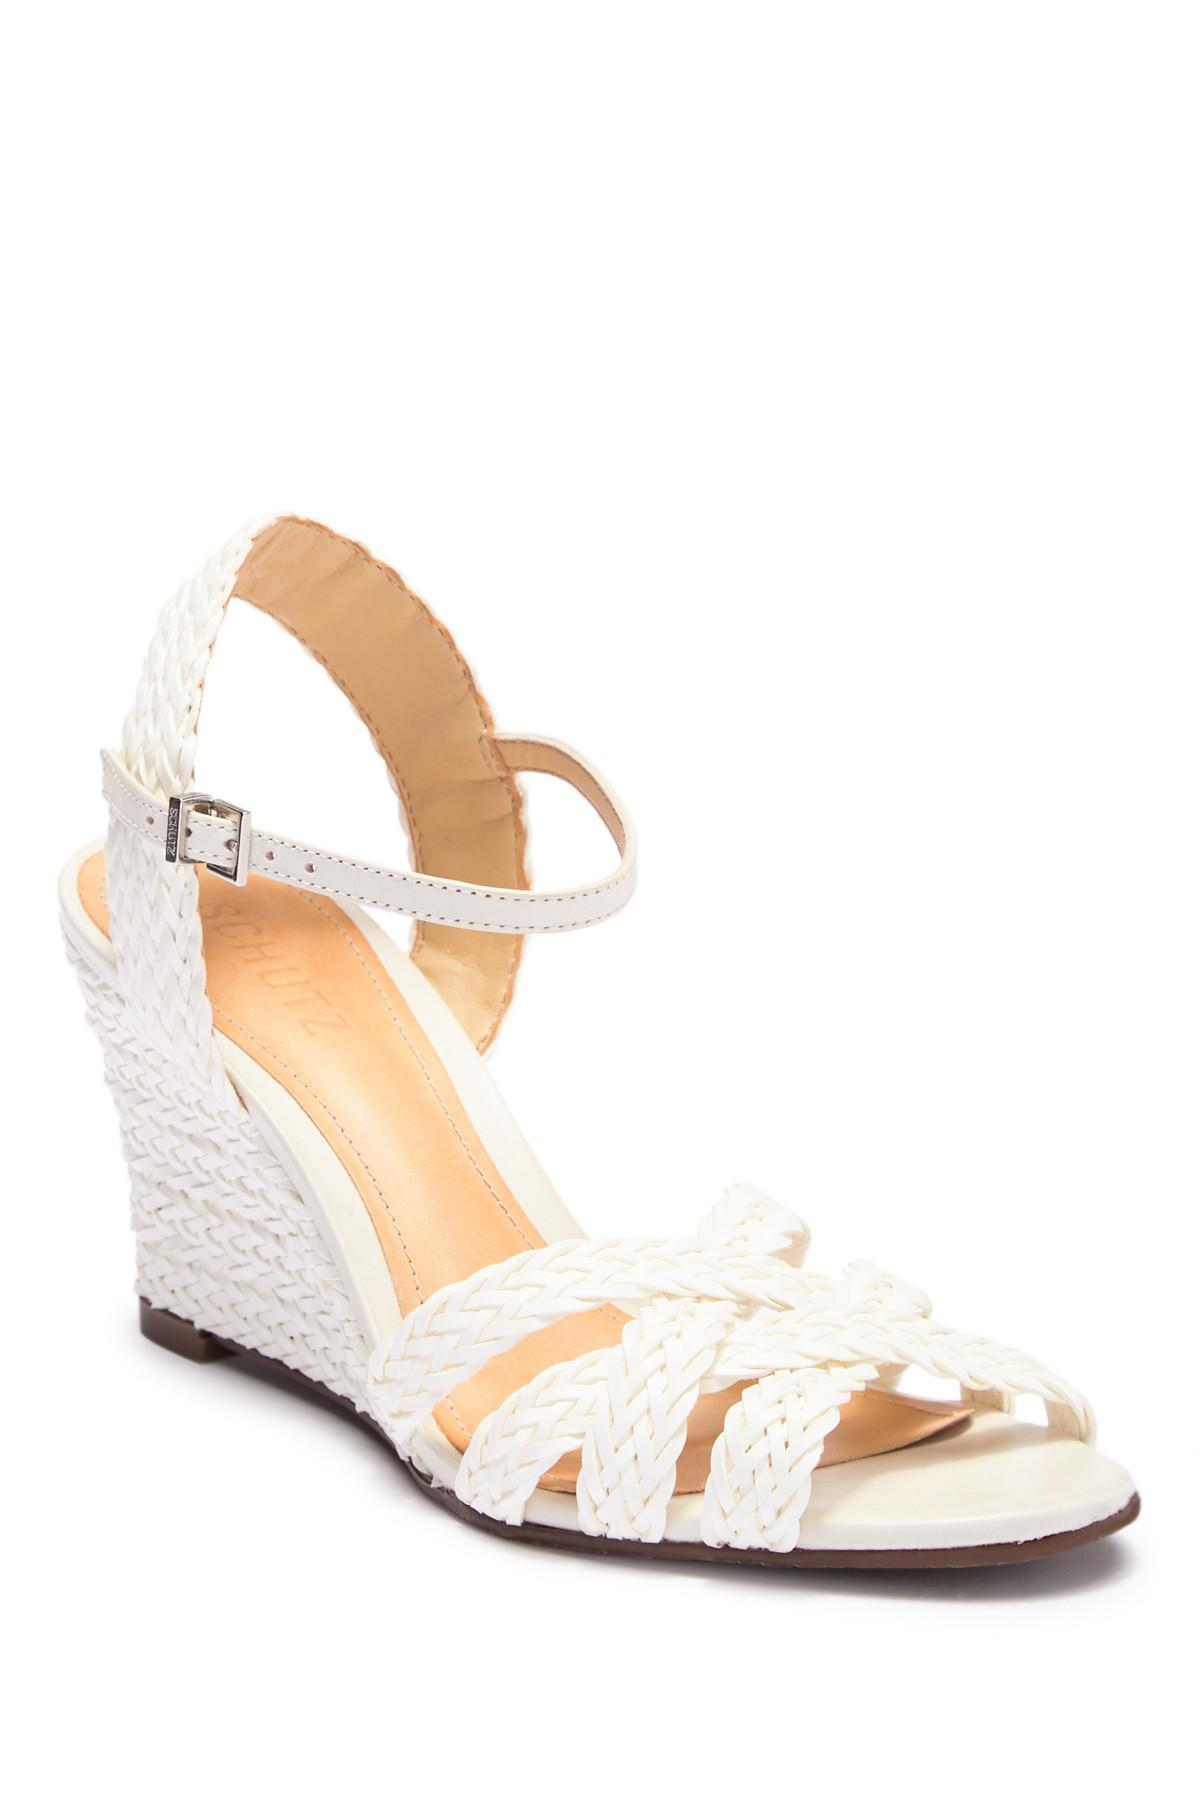 Schutz Mahoni Leather Woven Wedge Sandal WuLvrH